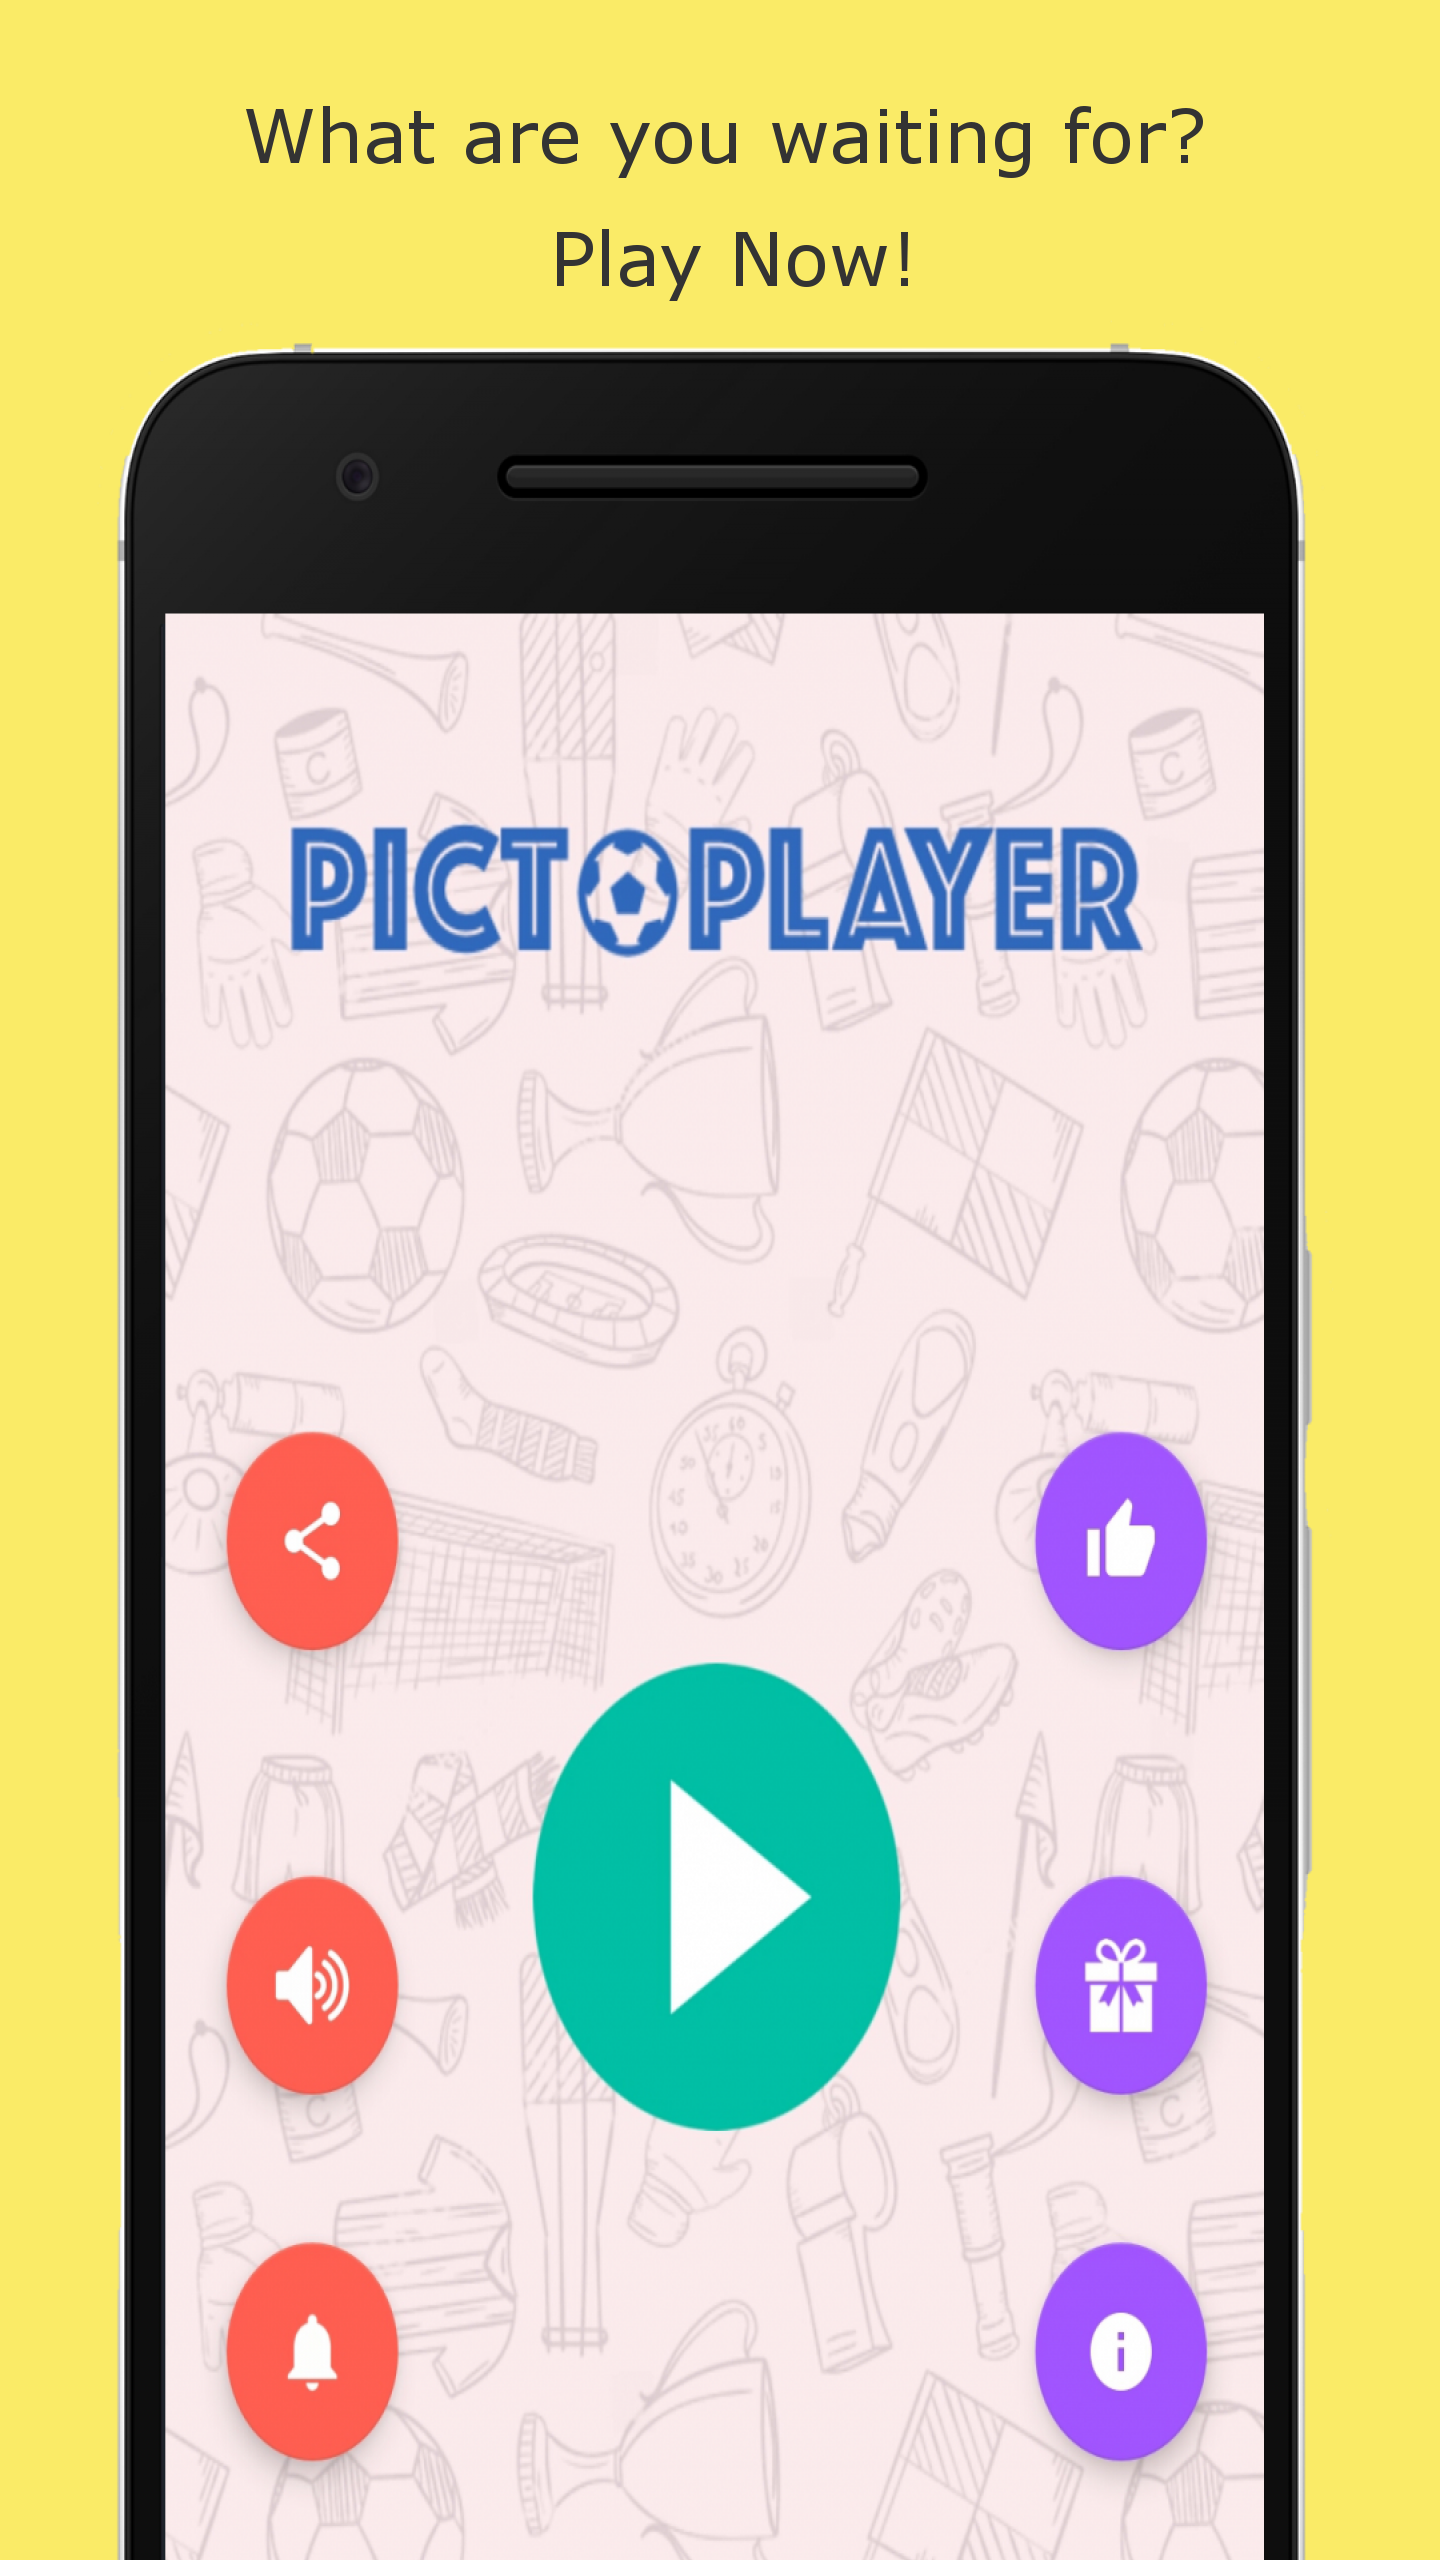 Pictoplayer